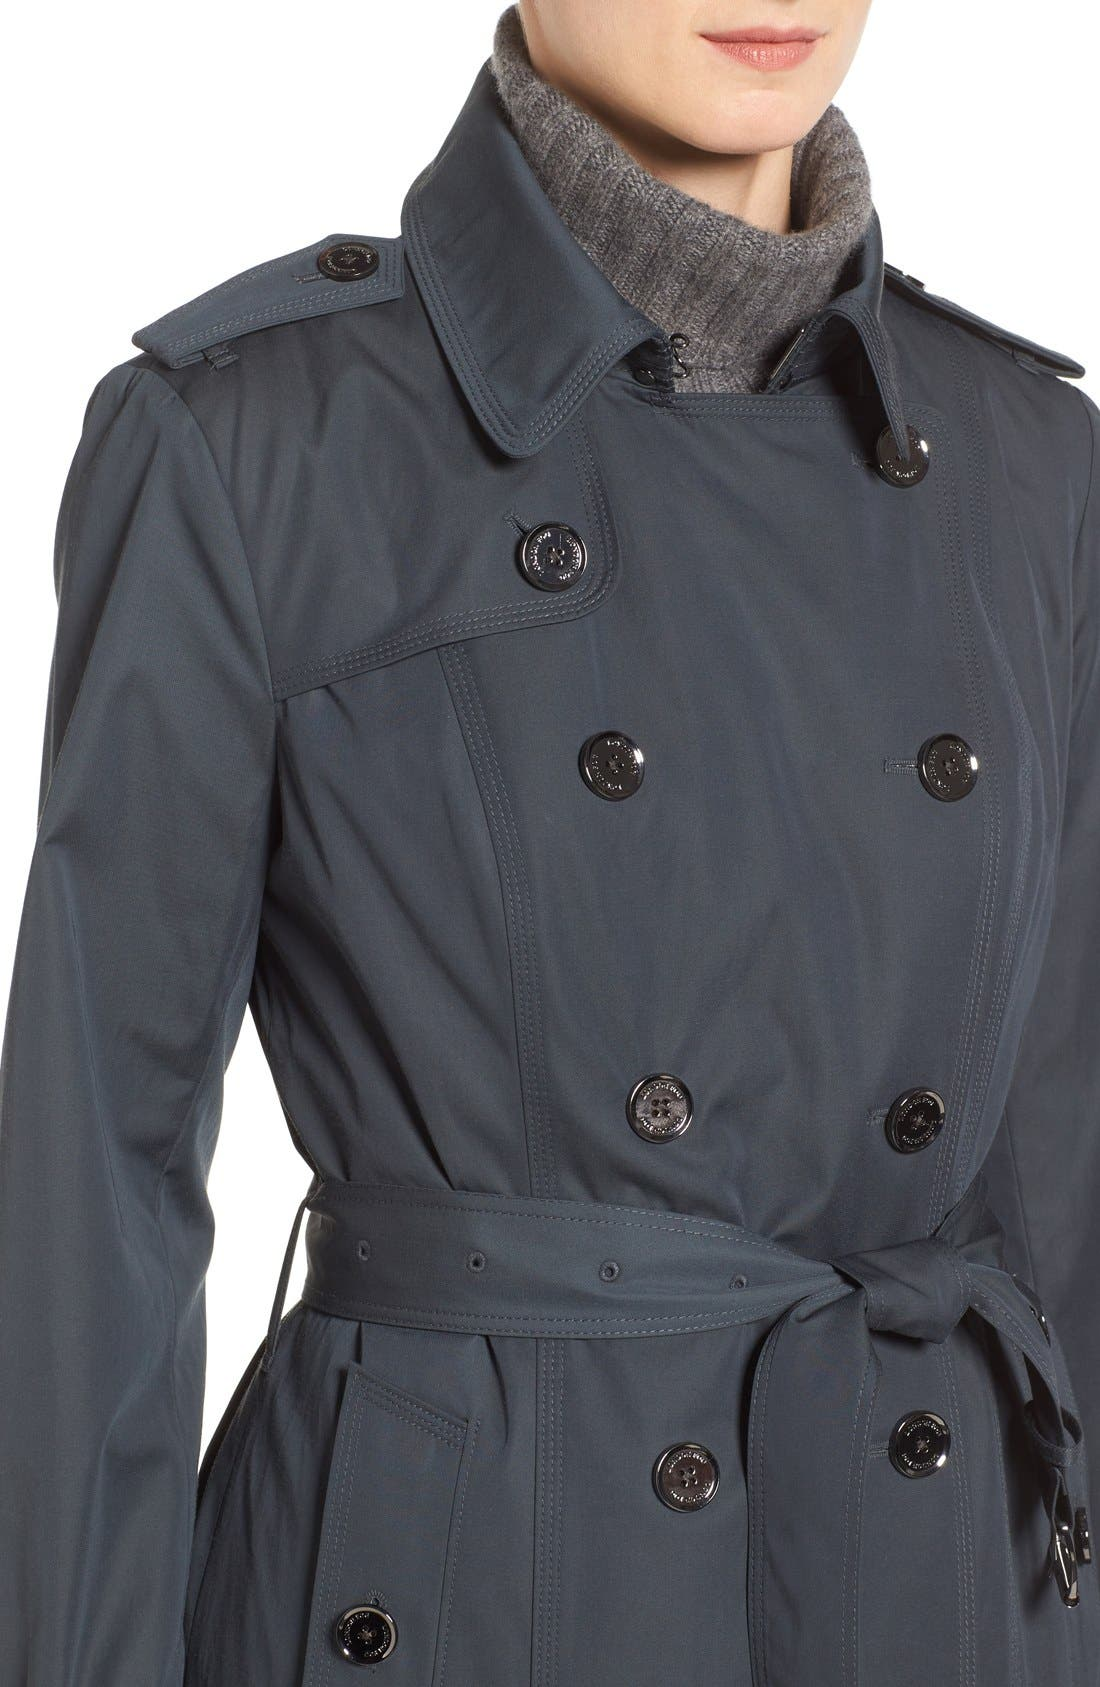 Double Breasted Trench Coat,                             Alternate thumbnail 4, color,                             SLATE